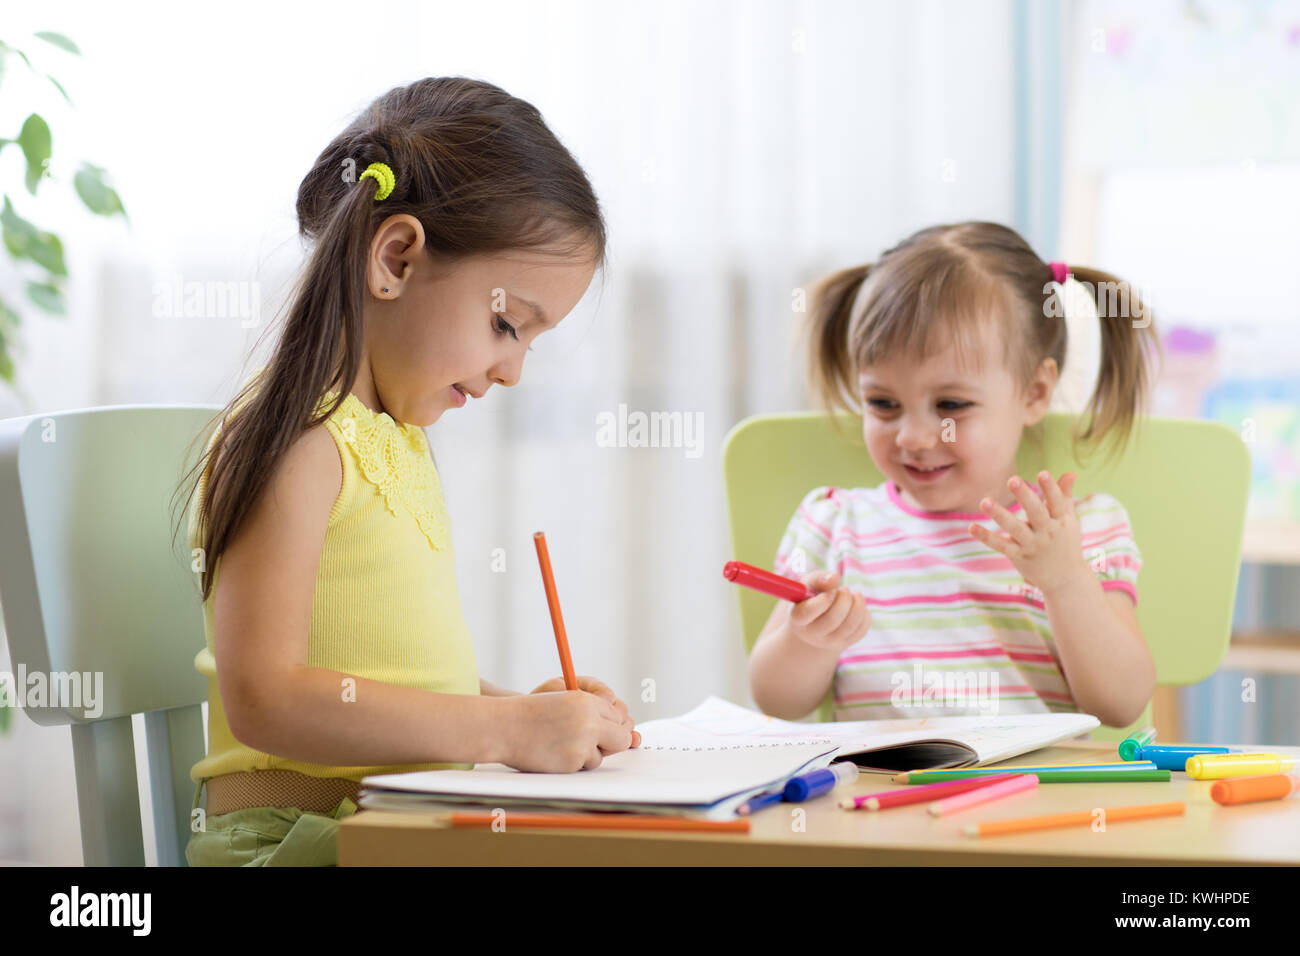 happy children drawing in nursery room - Stock Image